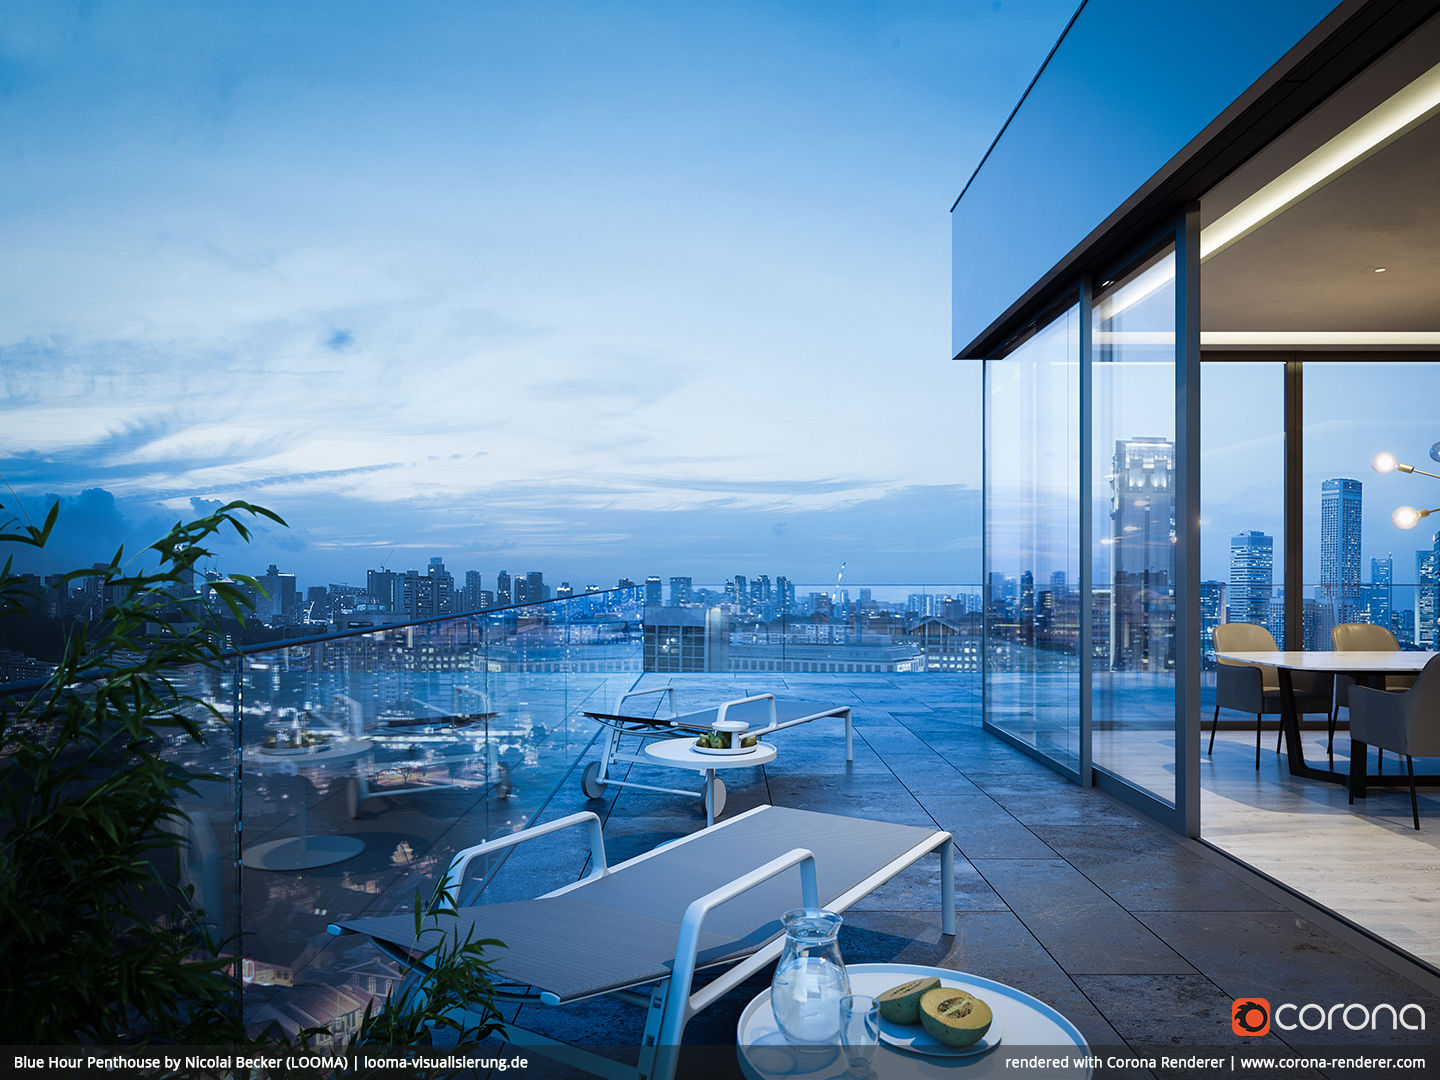 Blue Hour Penthouse 02 by Nicolai Becker (LOOMA)